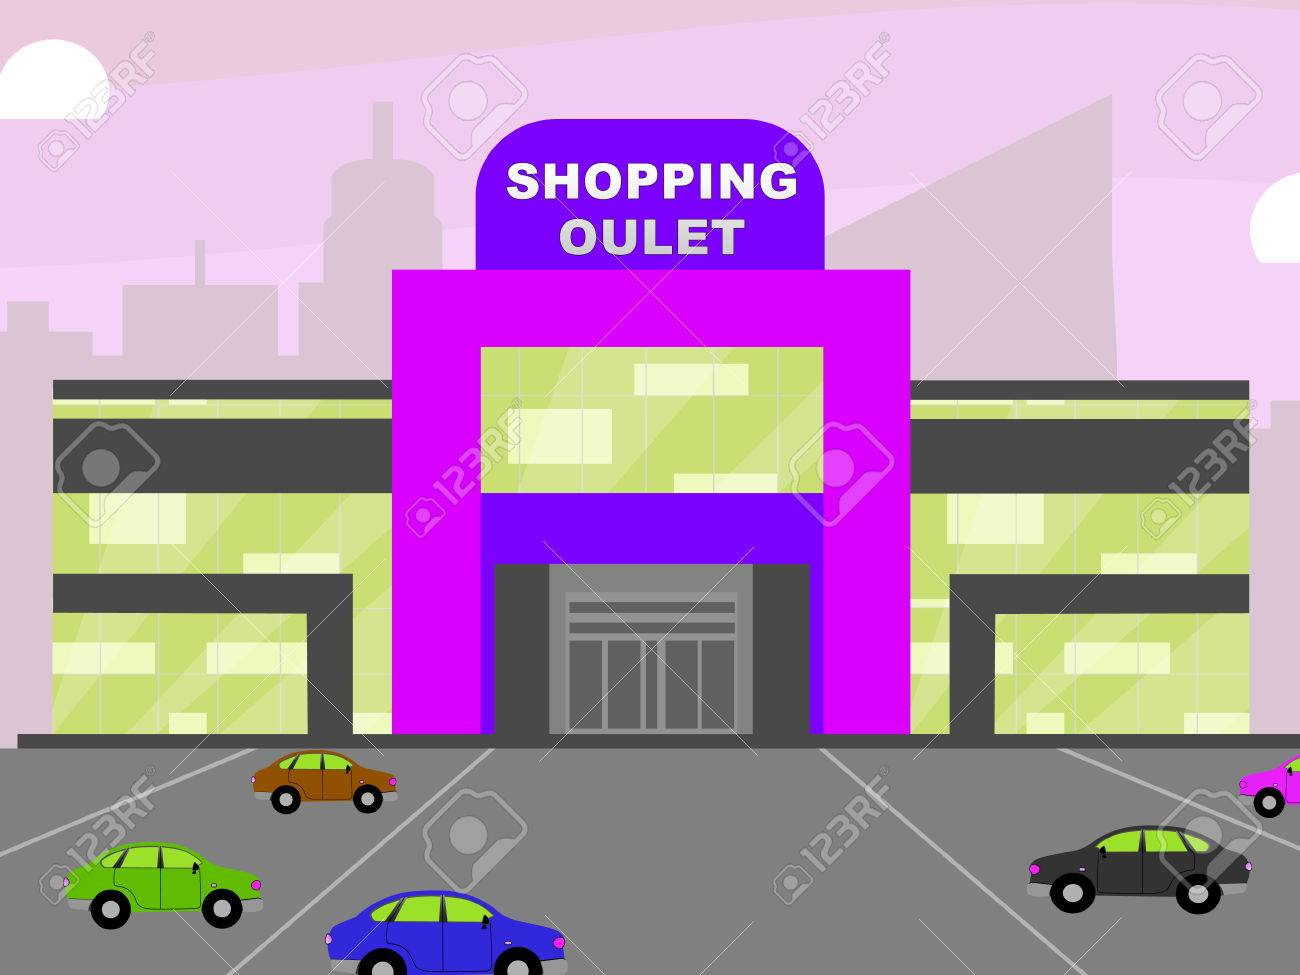 Shopping Outlet Store Meaning Retail Shopping 3d Illustration Stock